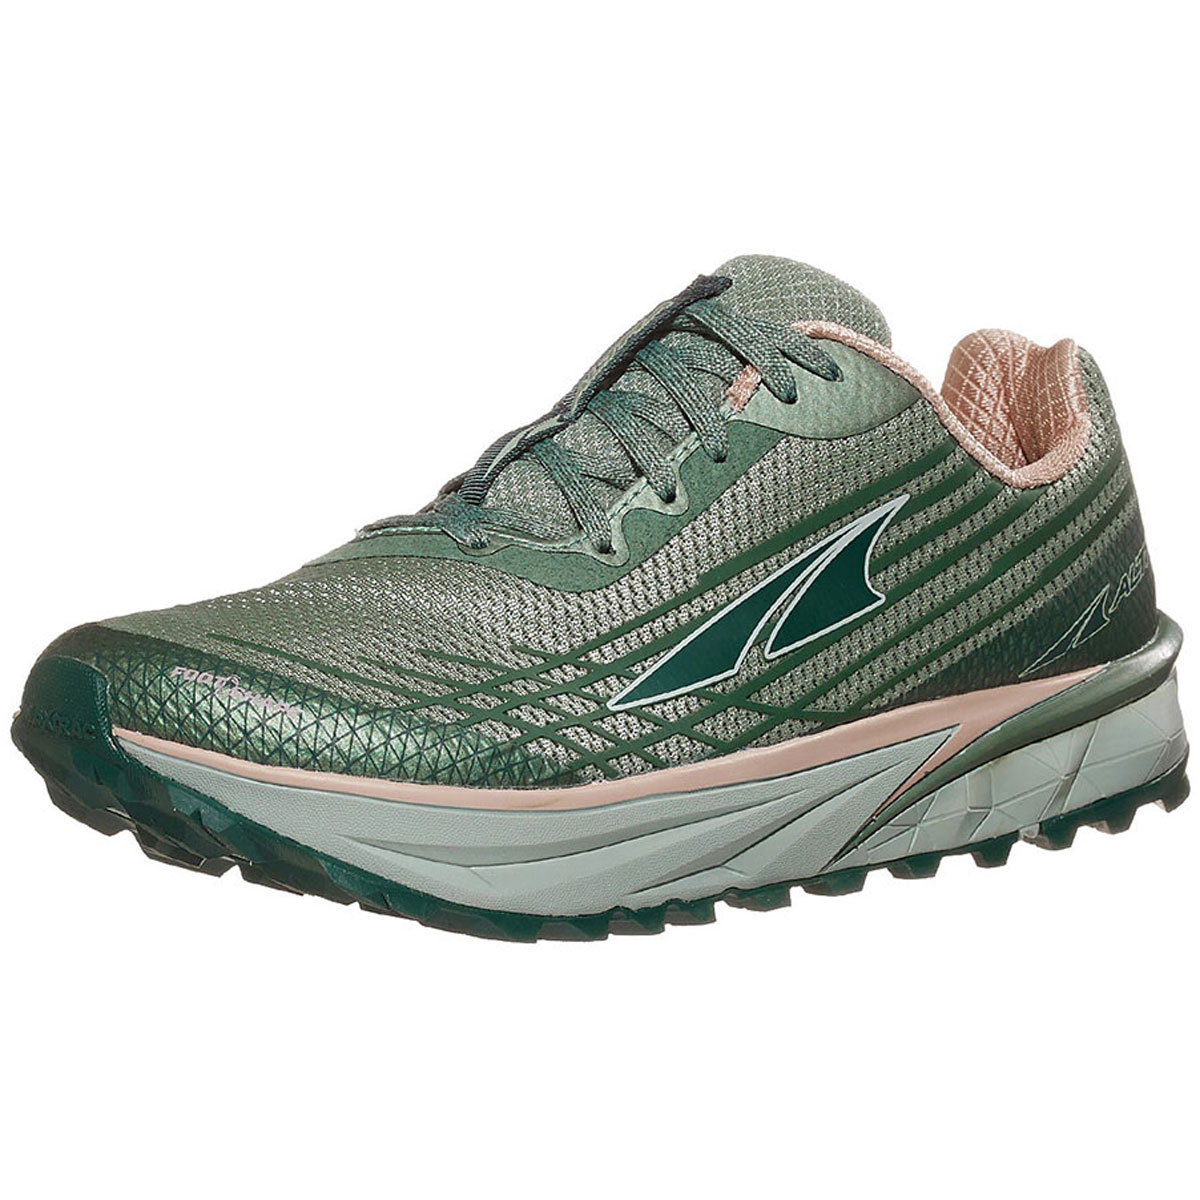 Women's Altra Timp 2 Running Shoe - Color: Lily Pad Green (Regular Width) - Size: 6.5, Lily Pad Green, large, image 3